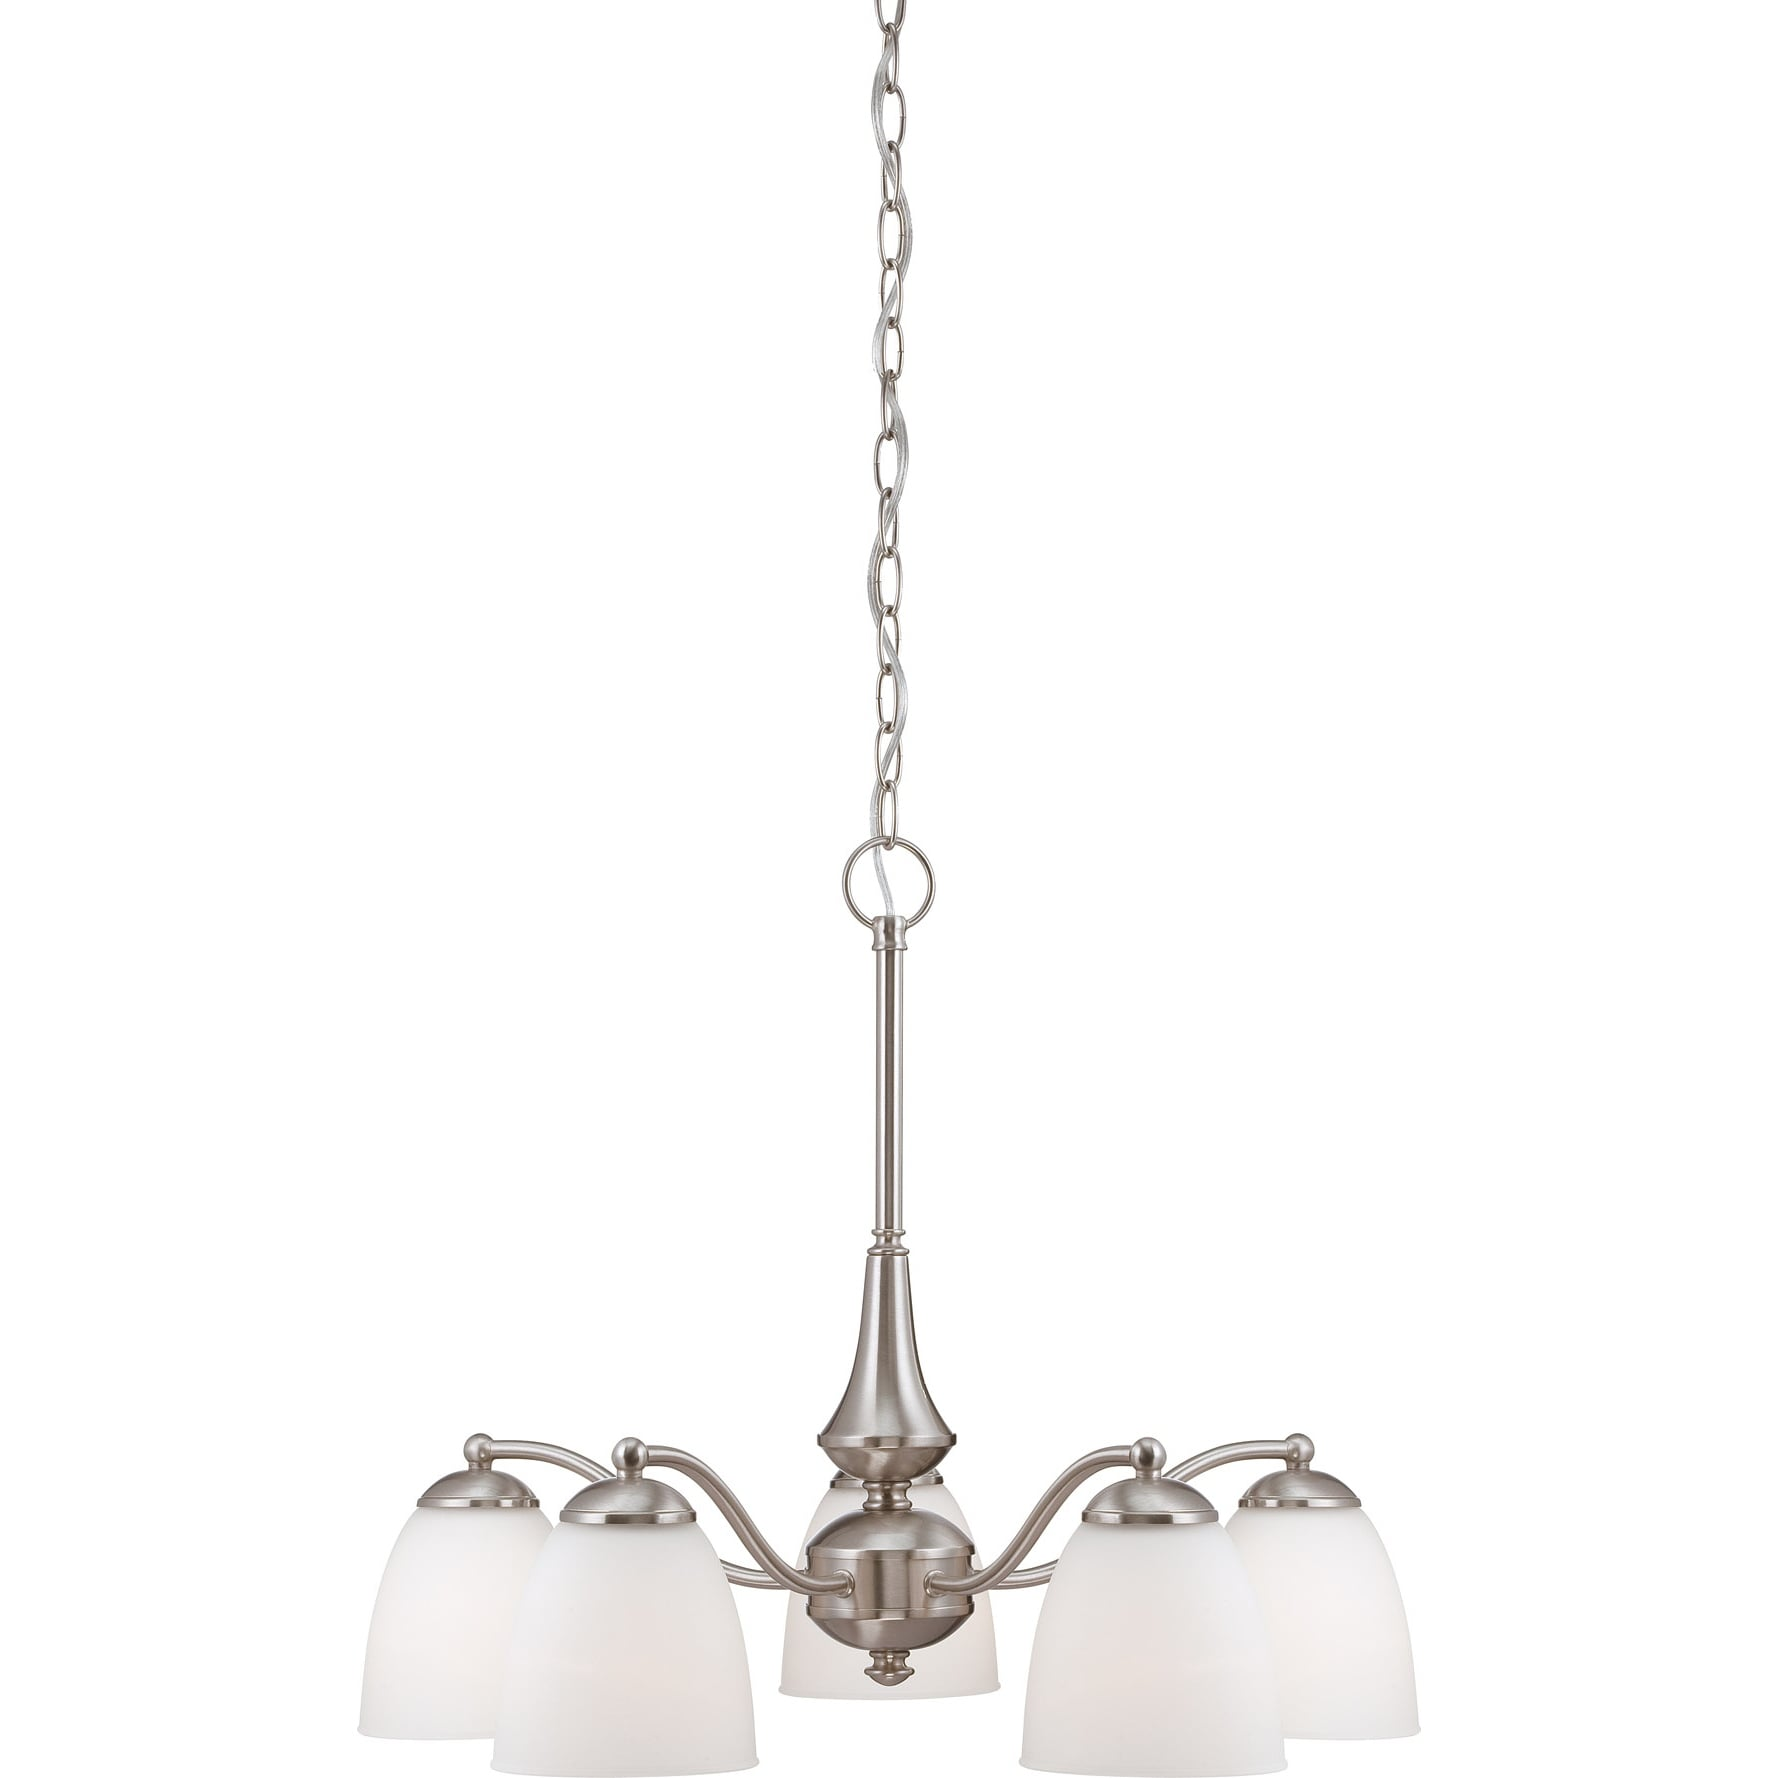 Nuvo 'Patton' 5-light Brushed Nickel Chandelier - Thumbnail 0